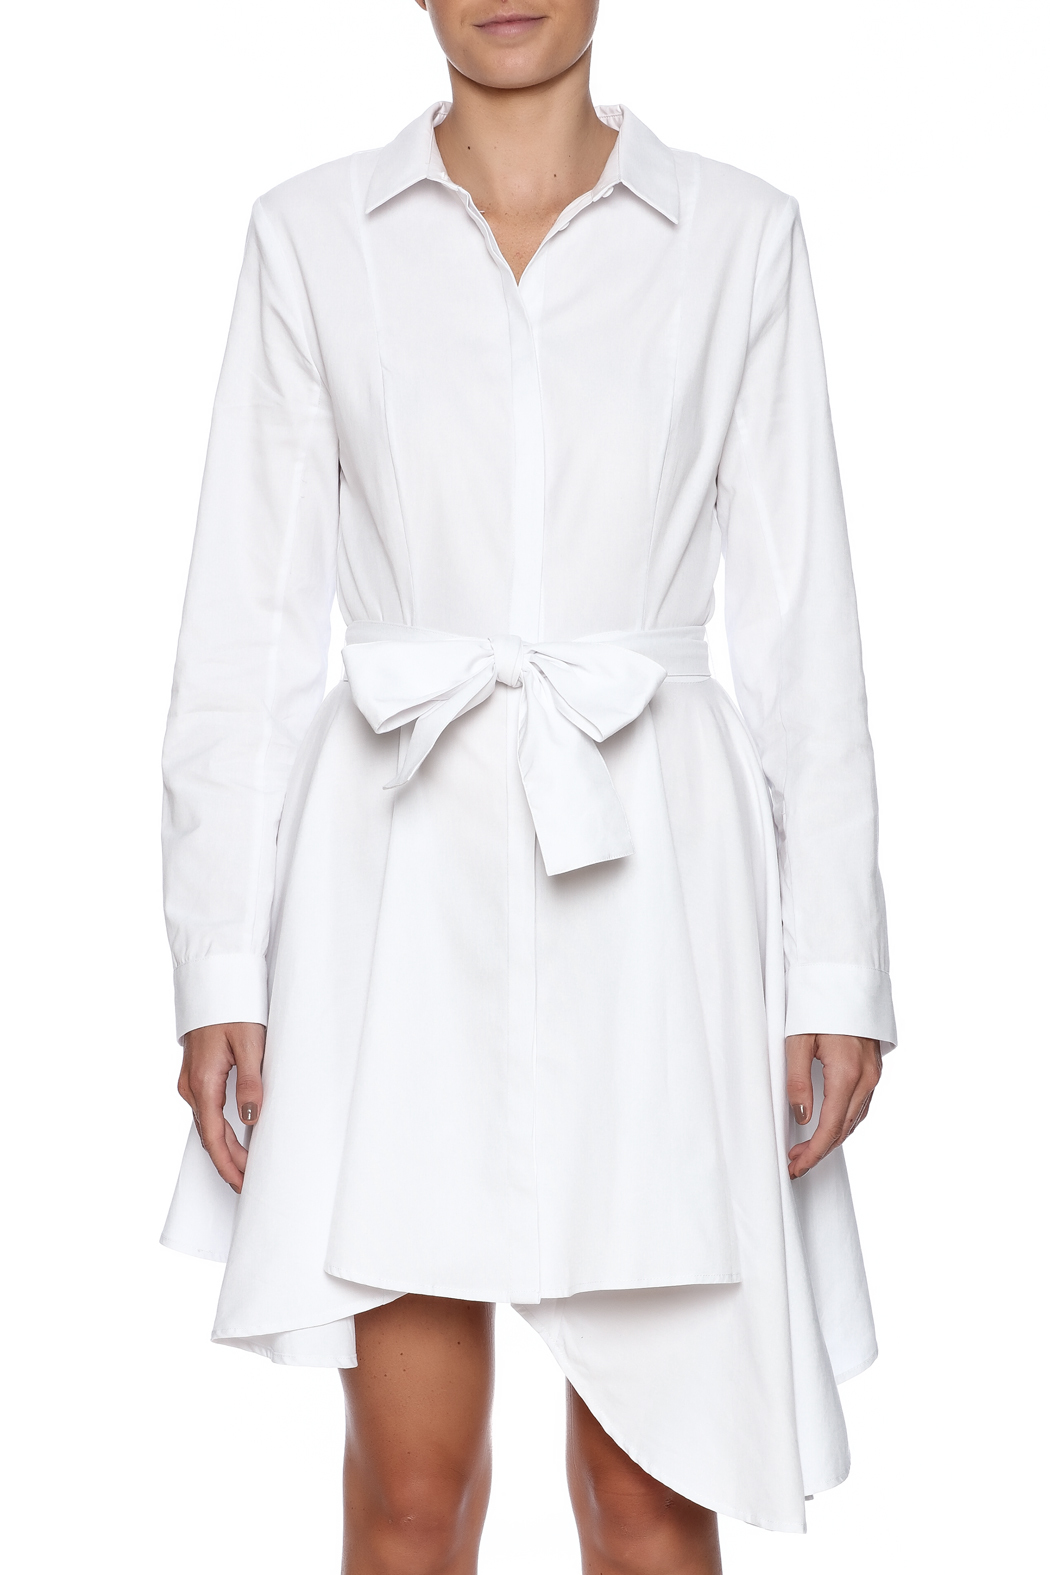 C/MEO COLLECTIVE White Shirt Dress - Side Cropped Image